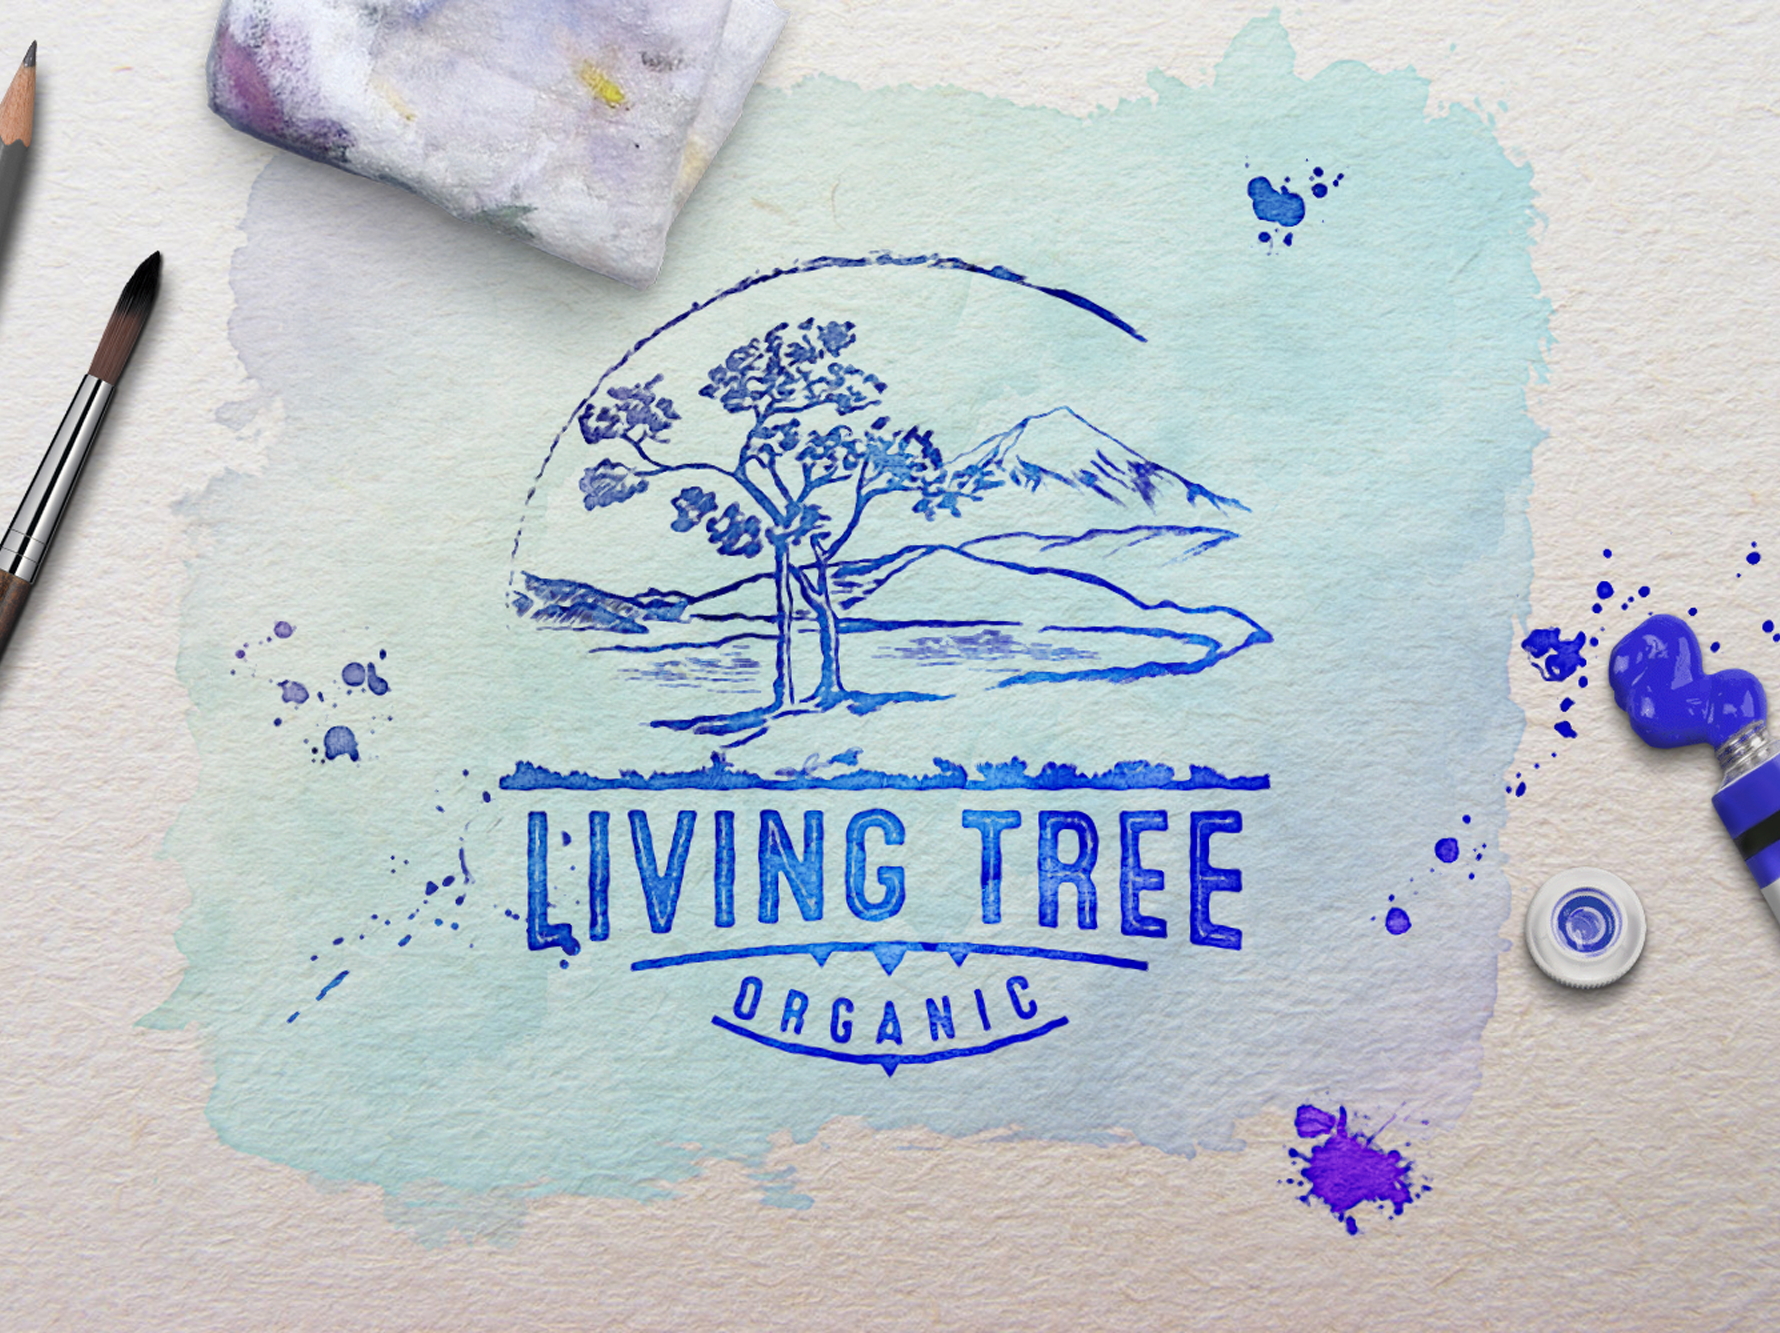 Living Tree Organic logo